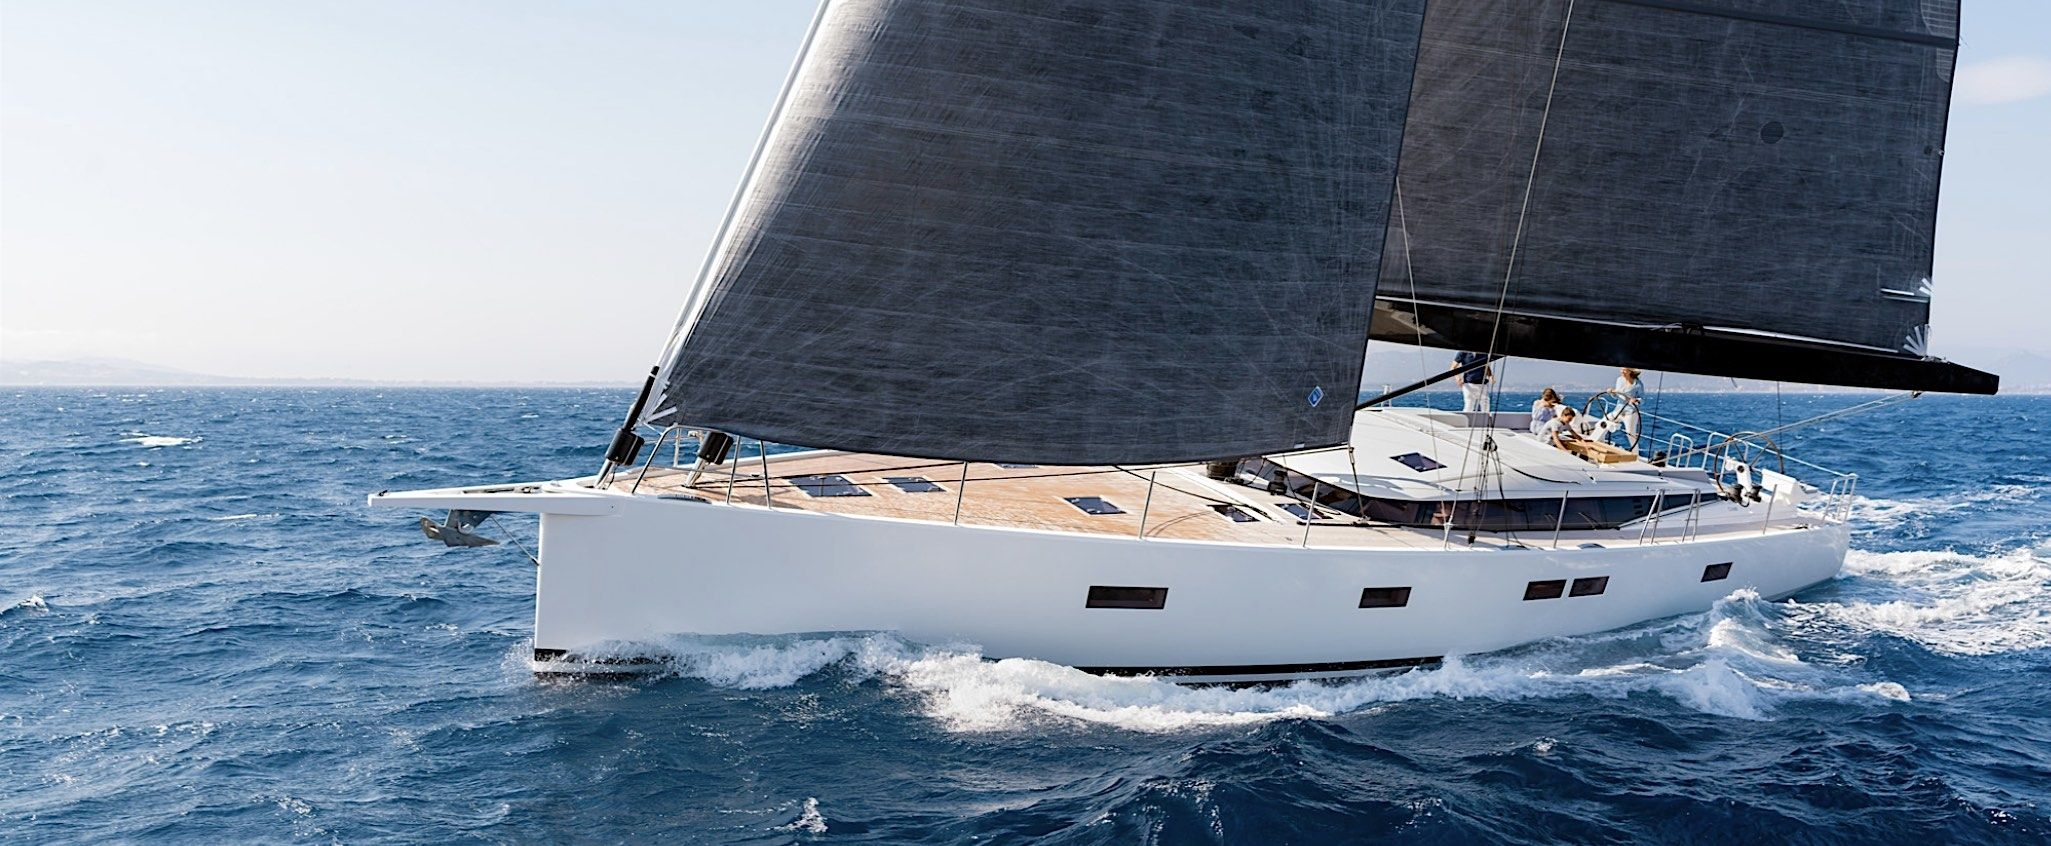 CNB Yachts - CNB 66 - Boats for sale